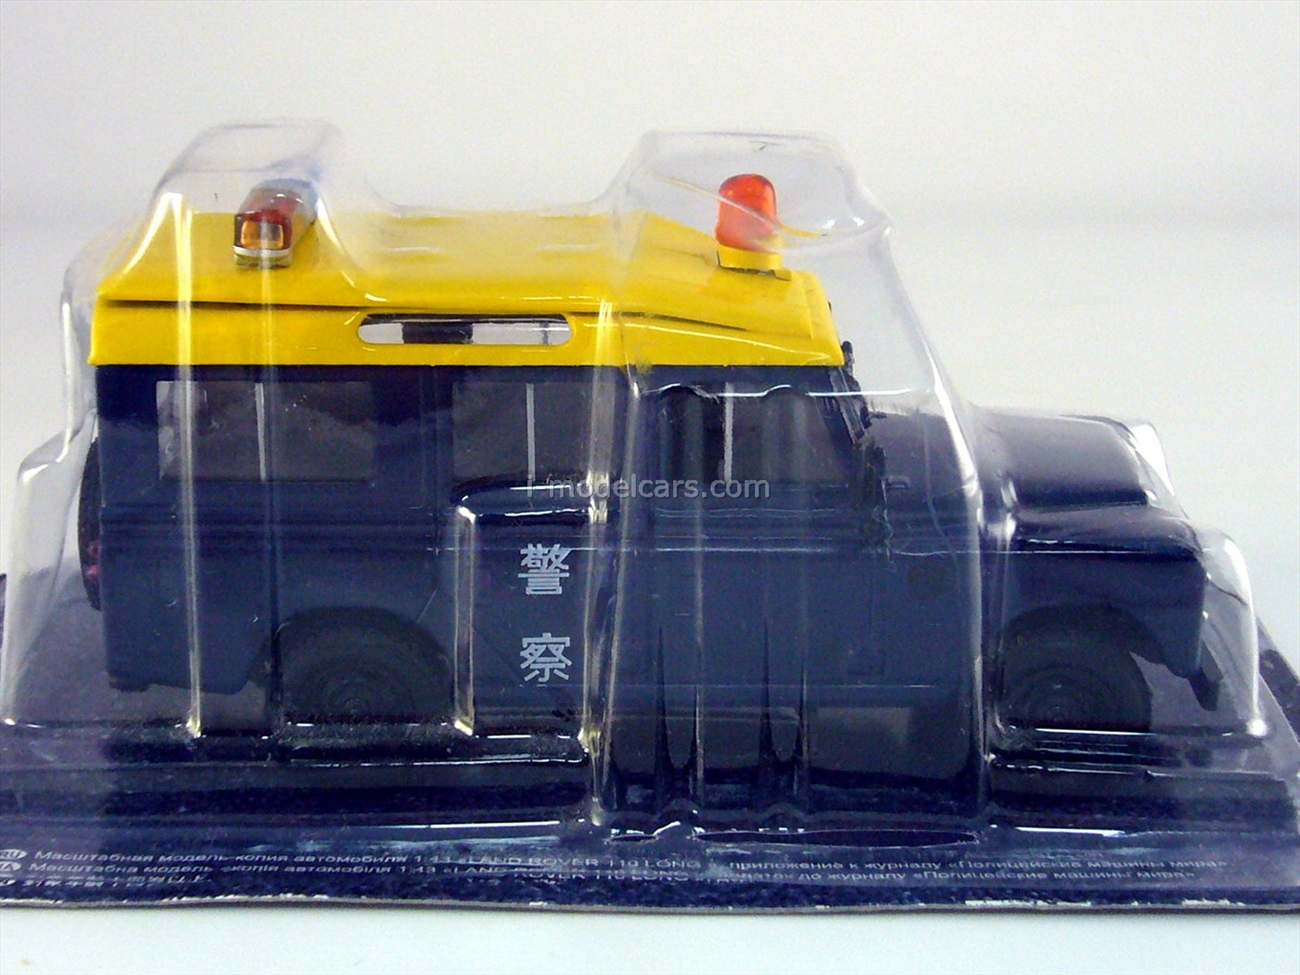 Land Rover Defender 109 LWB Hong Kong 1:43 DeAgostini World's Police Car #9